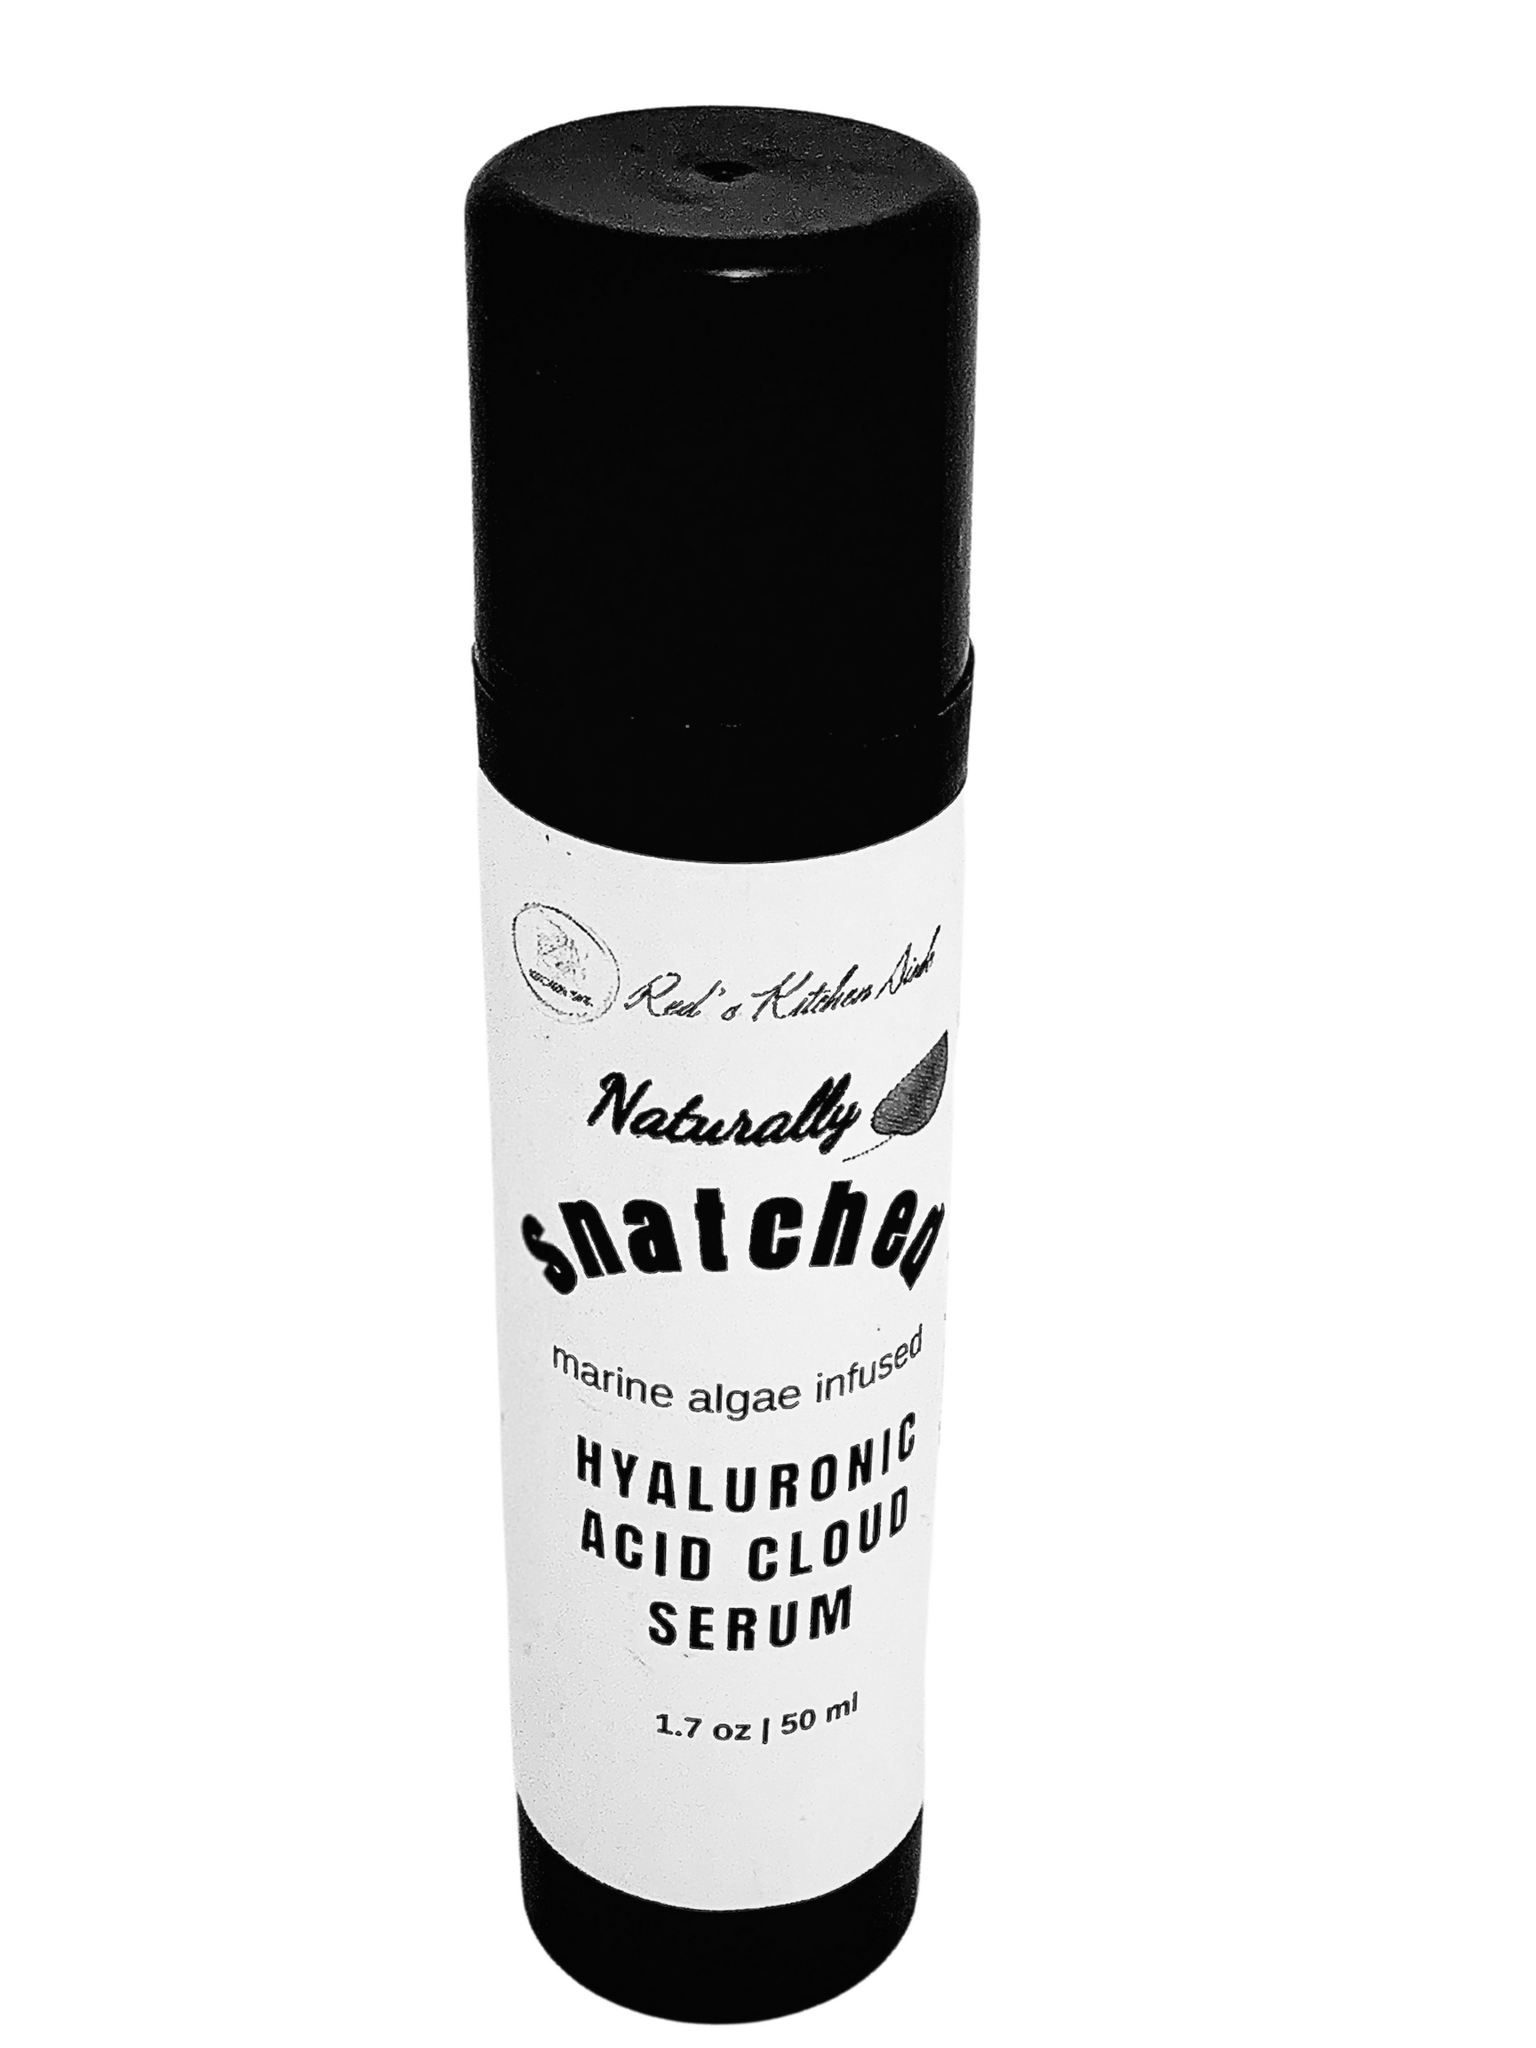 Hyaluronic Acid Cloud Serum | Naturally Snatched | Marine Algae Infused